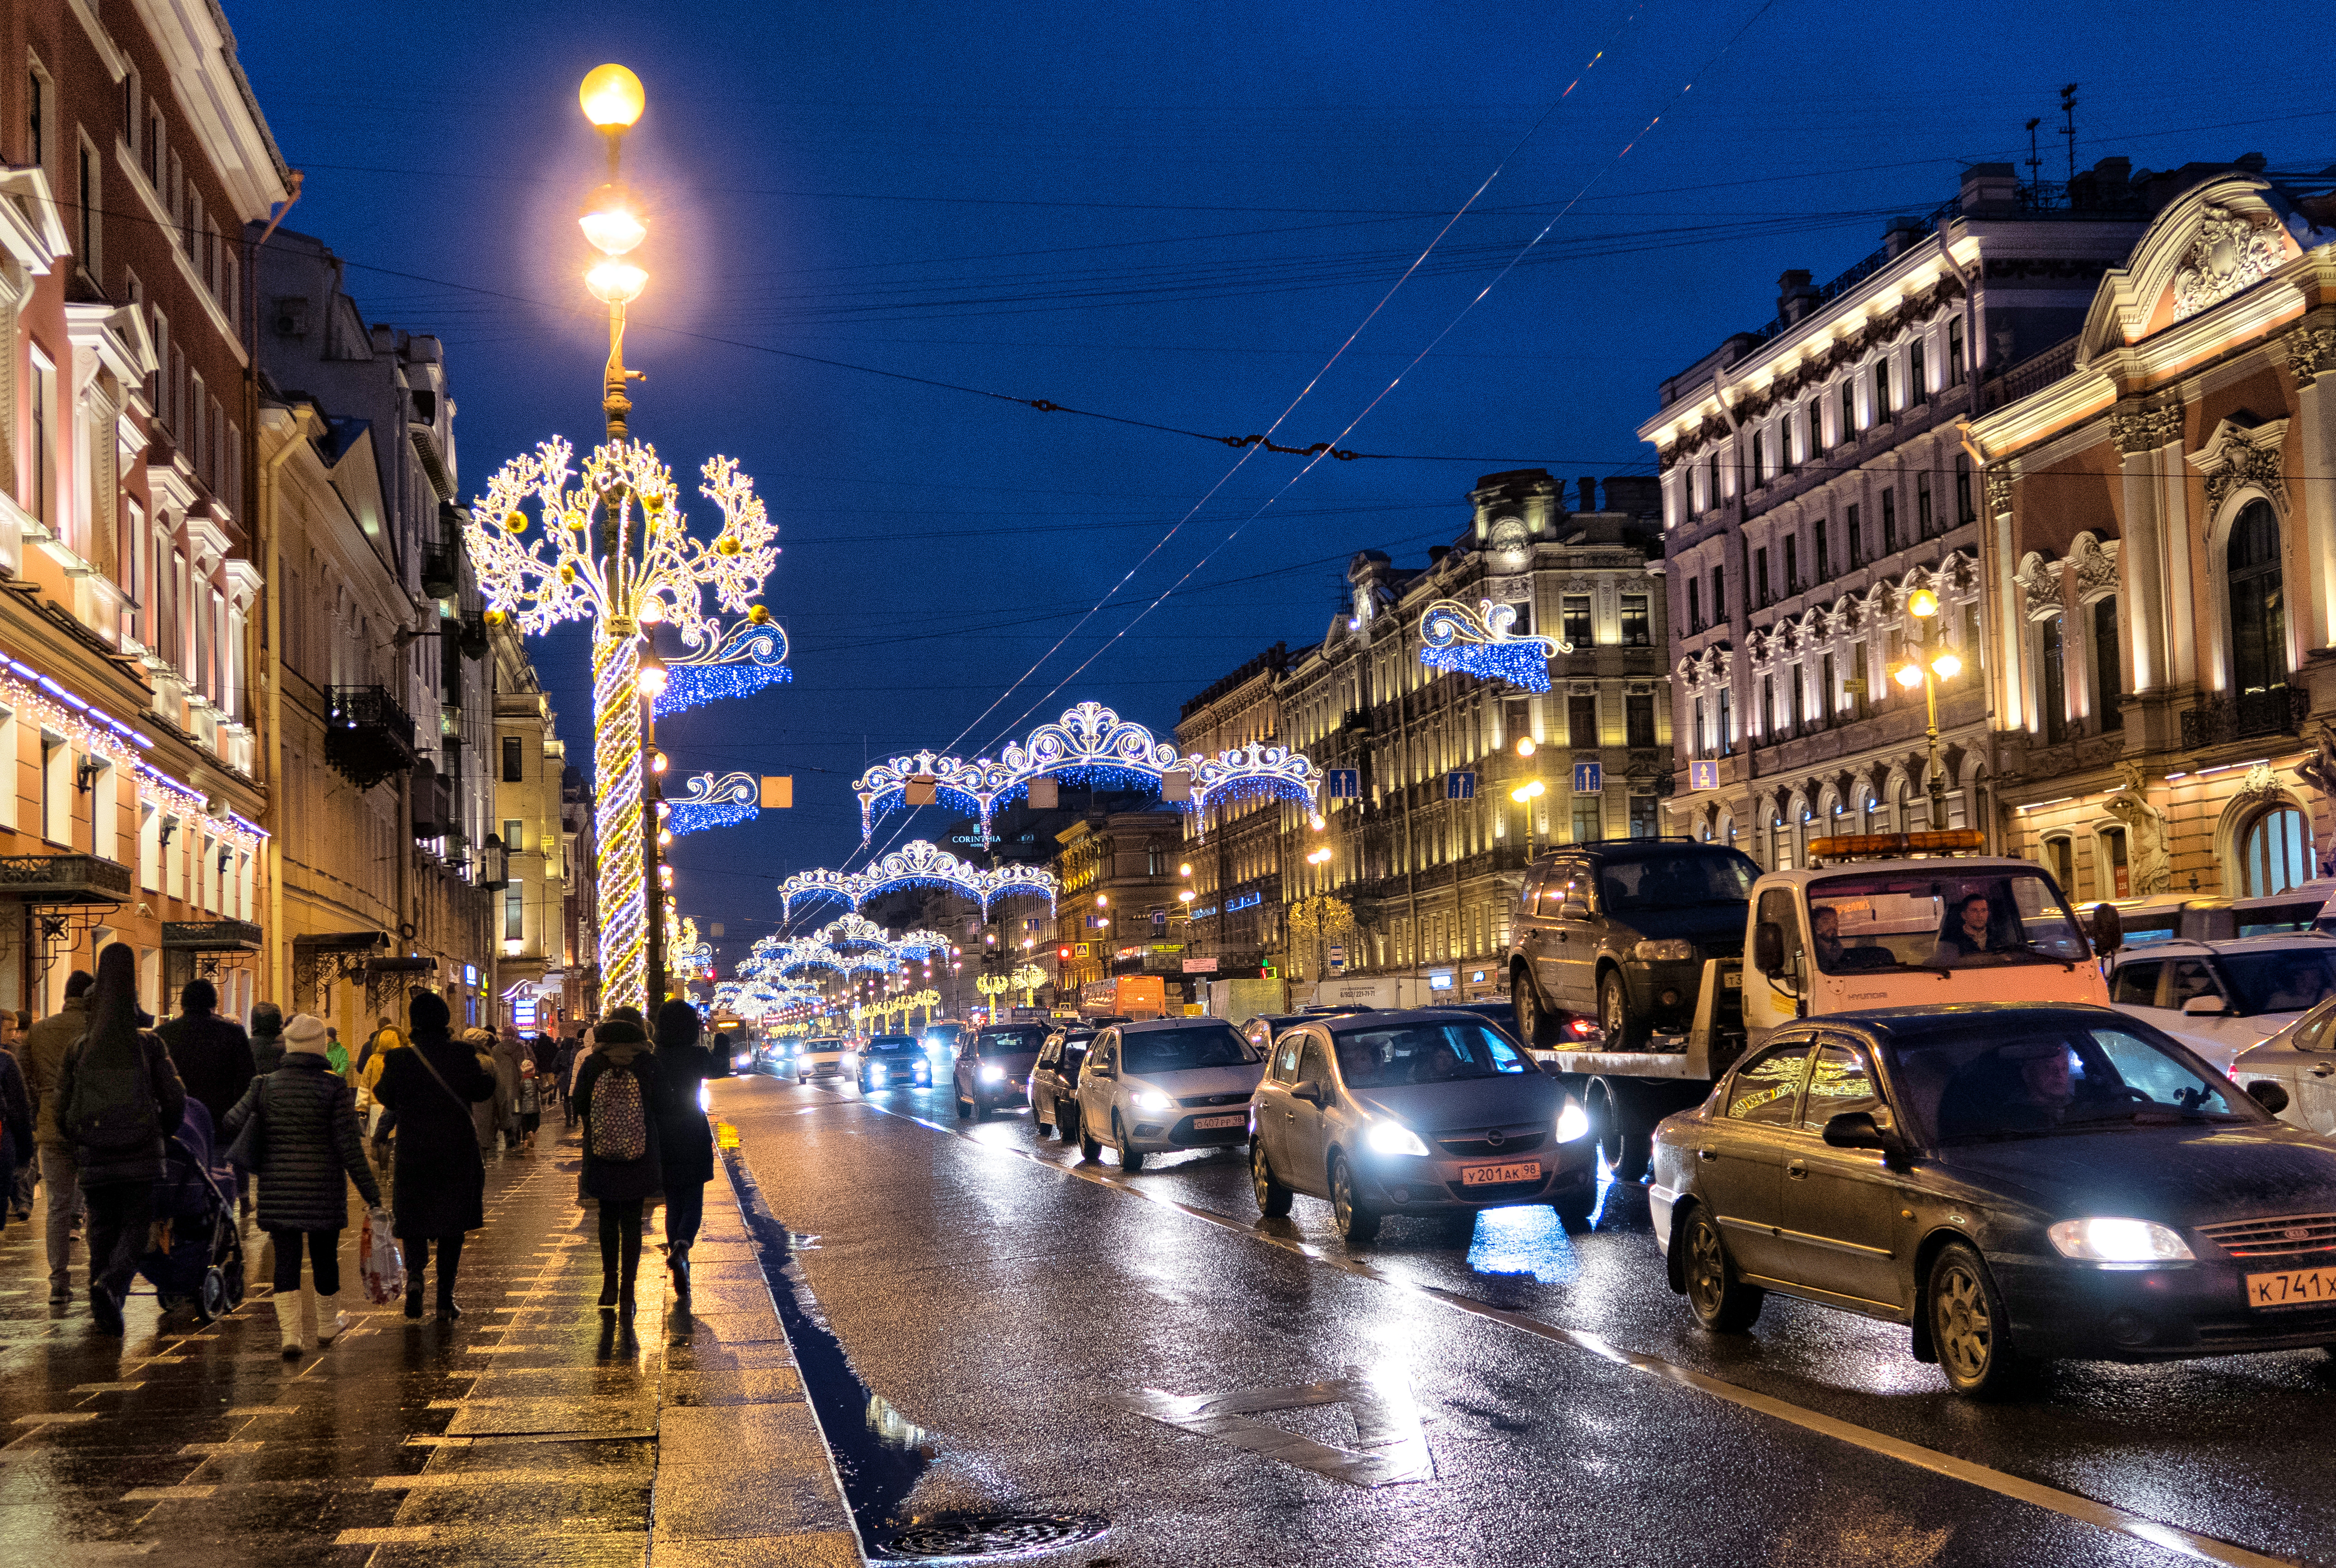 Nevsky Prospect recognized as one of the most beautiful streets in the world.